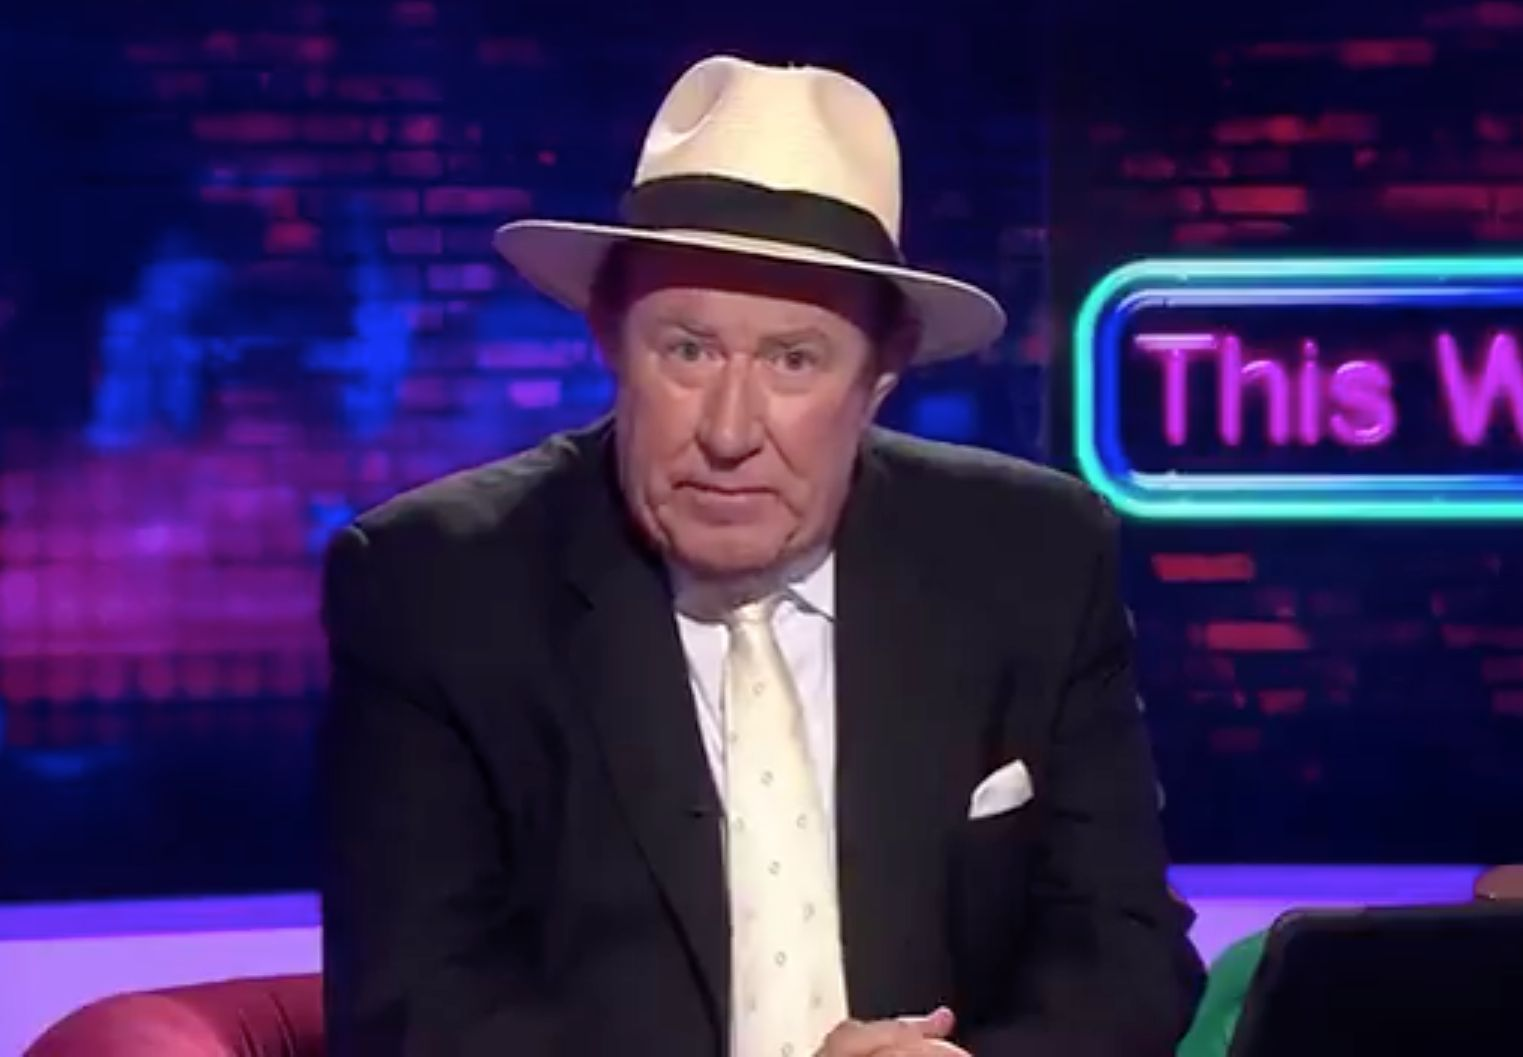 Andrew Neil has become known for his searing